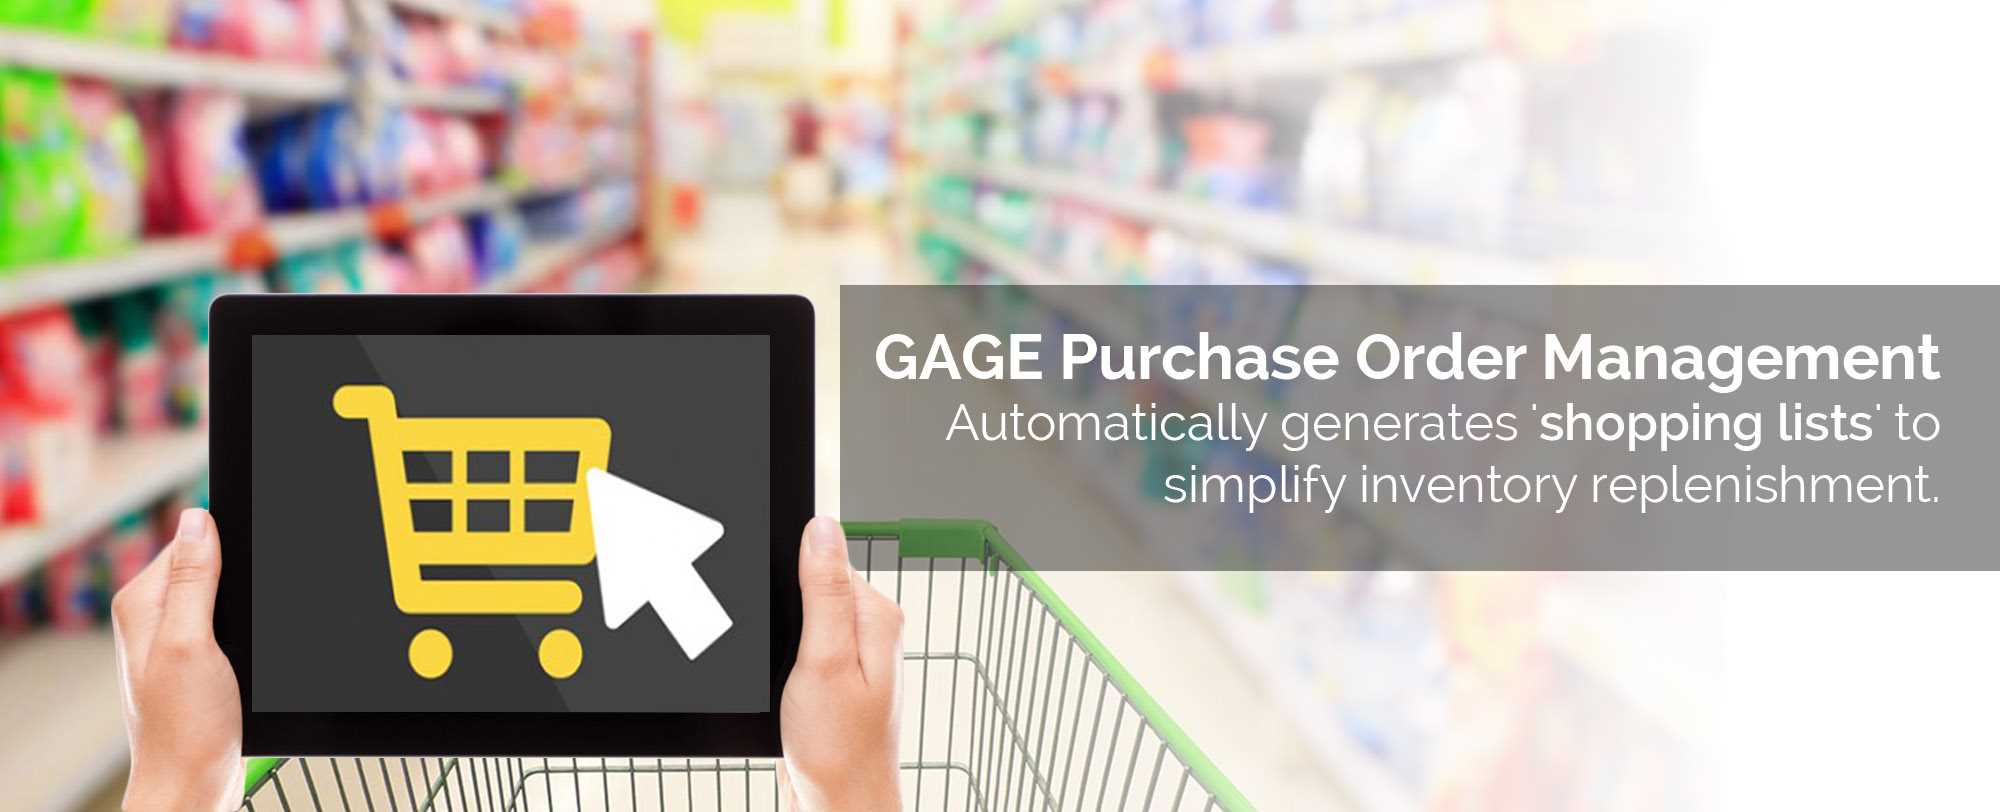 GAGE Puchase Order Management - Automatically generate shopping lists to simplify inventory replenishment